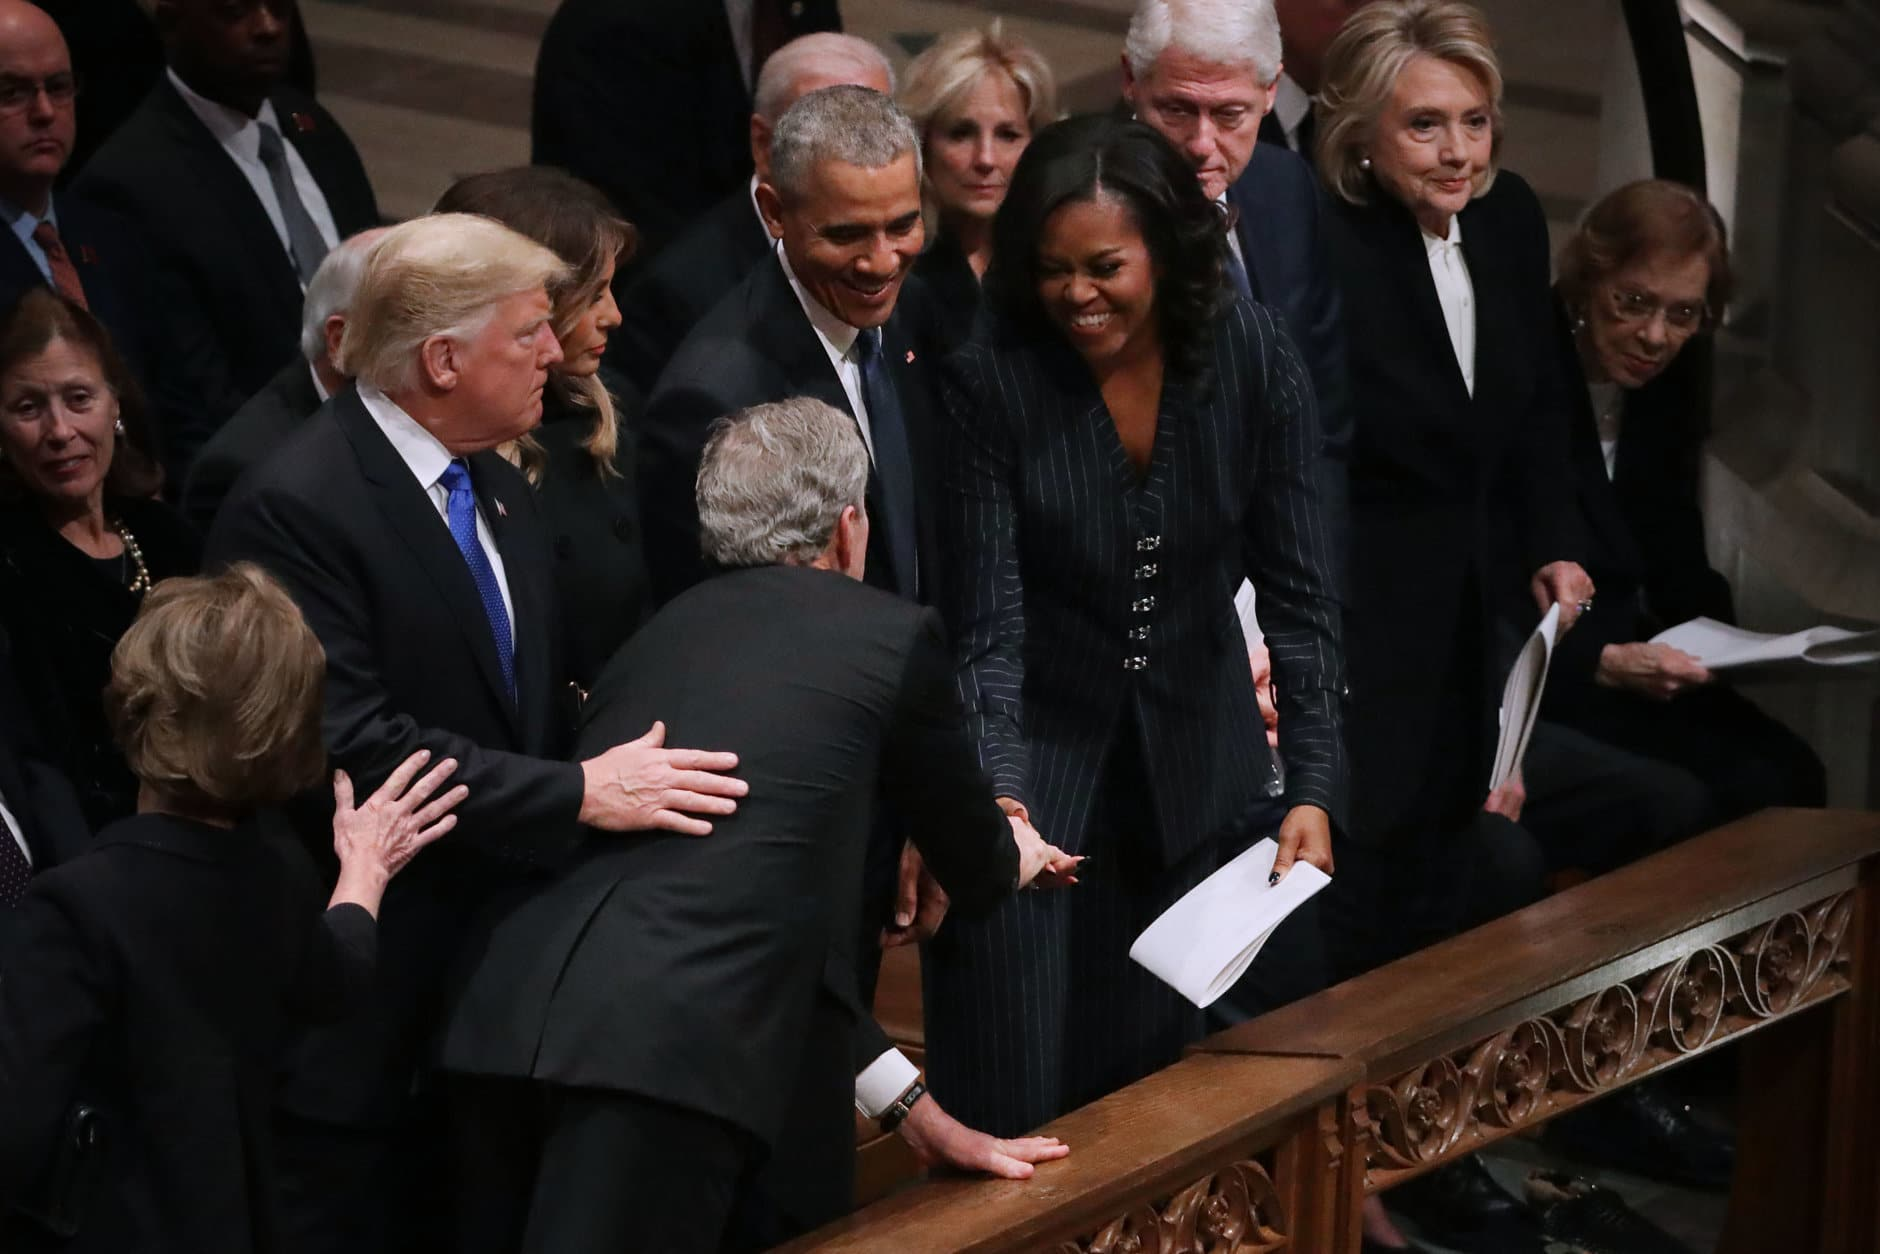 Former U.S. President George W. Bush (C) leans across President Donald Trump and first lady Melania Trump to greet fellow former presidents Barack Obama, Bill Clinton and former first ladies Rosalynn Carter, Hillary Clinton and Michelle Obama during the state funeral for his father and former President George H.W. Bush at the National Cathedral December 05, 2018 in Washington, DC. A WWII combat veteran, Bush served as a member of Congress from Texas, ambassador to the United Nations, director of the CIA, vice president and 41st president of the United States.  (Photo by Chip Somodevilla/Getty Images)